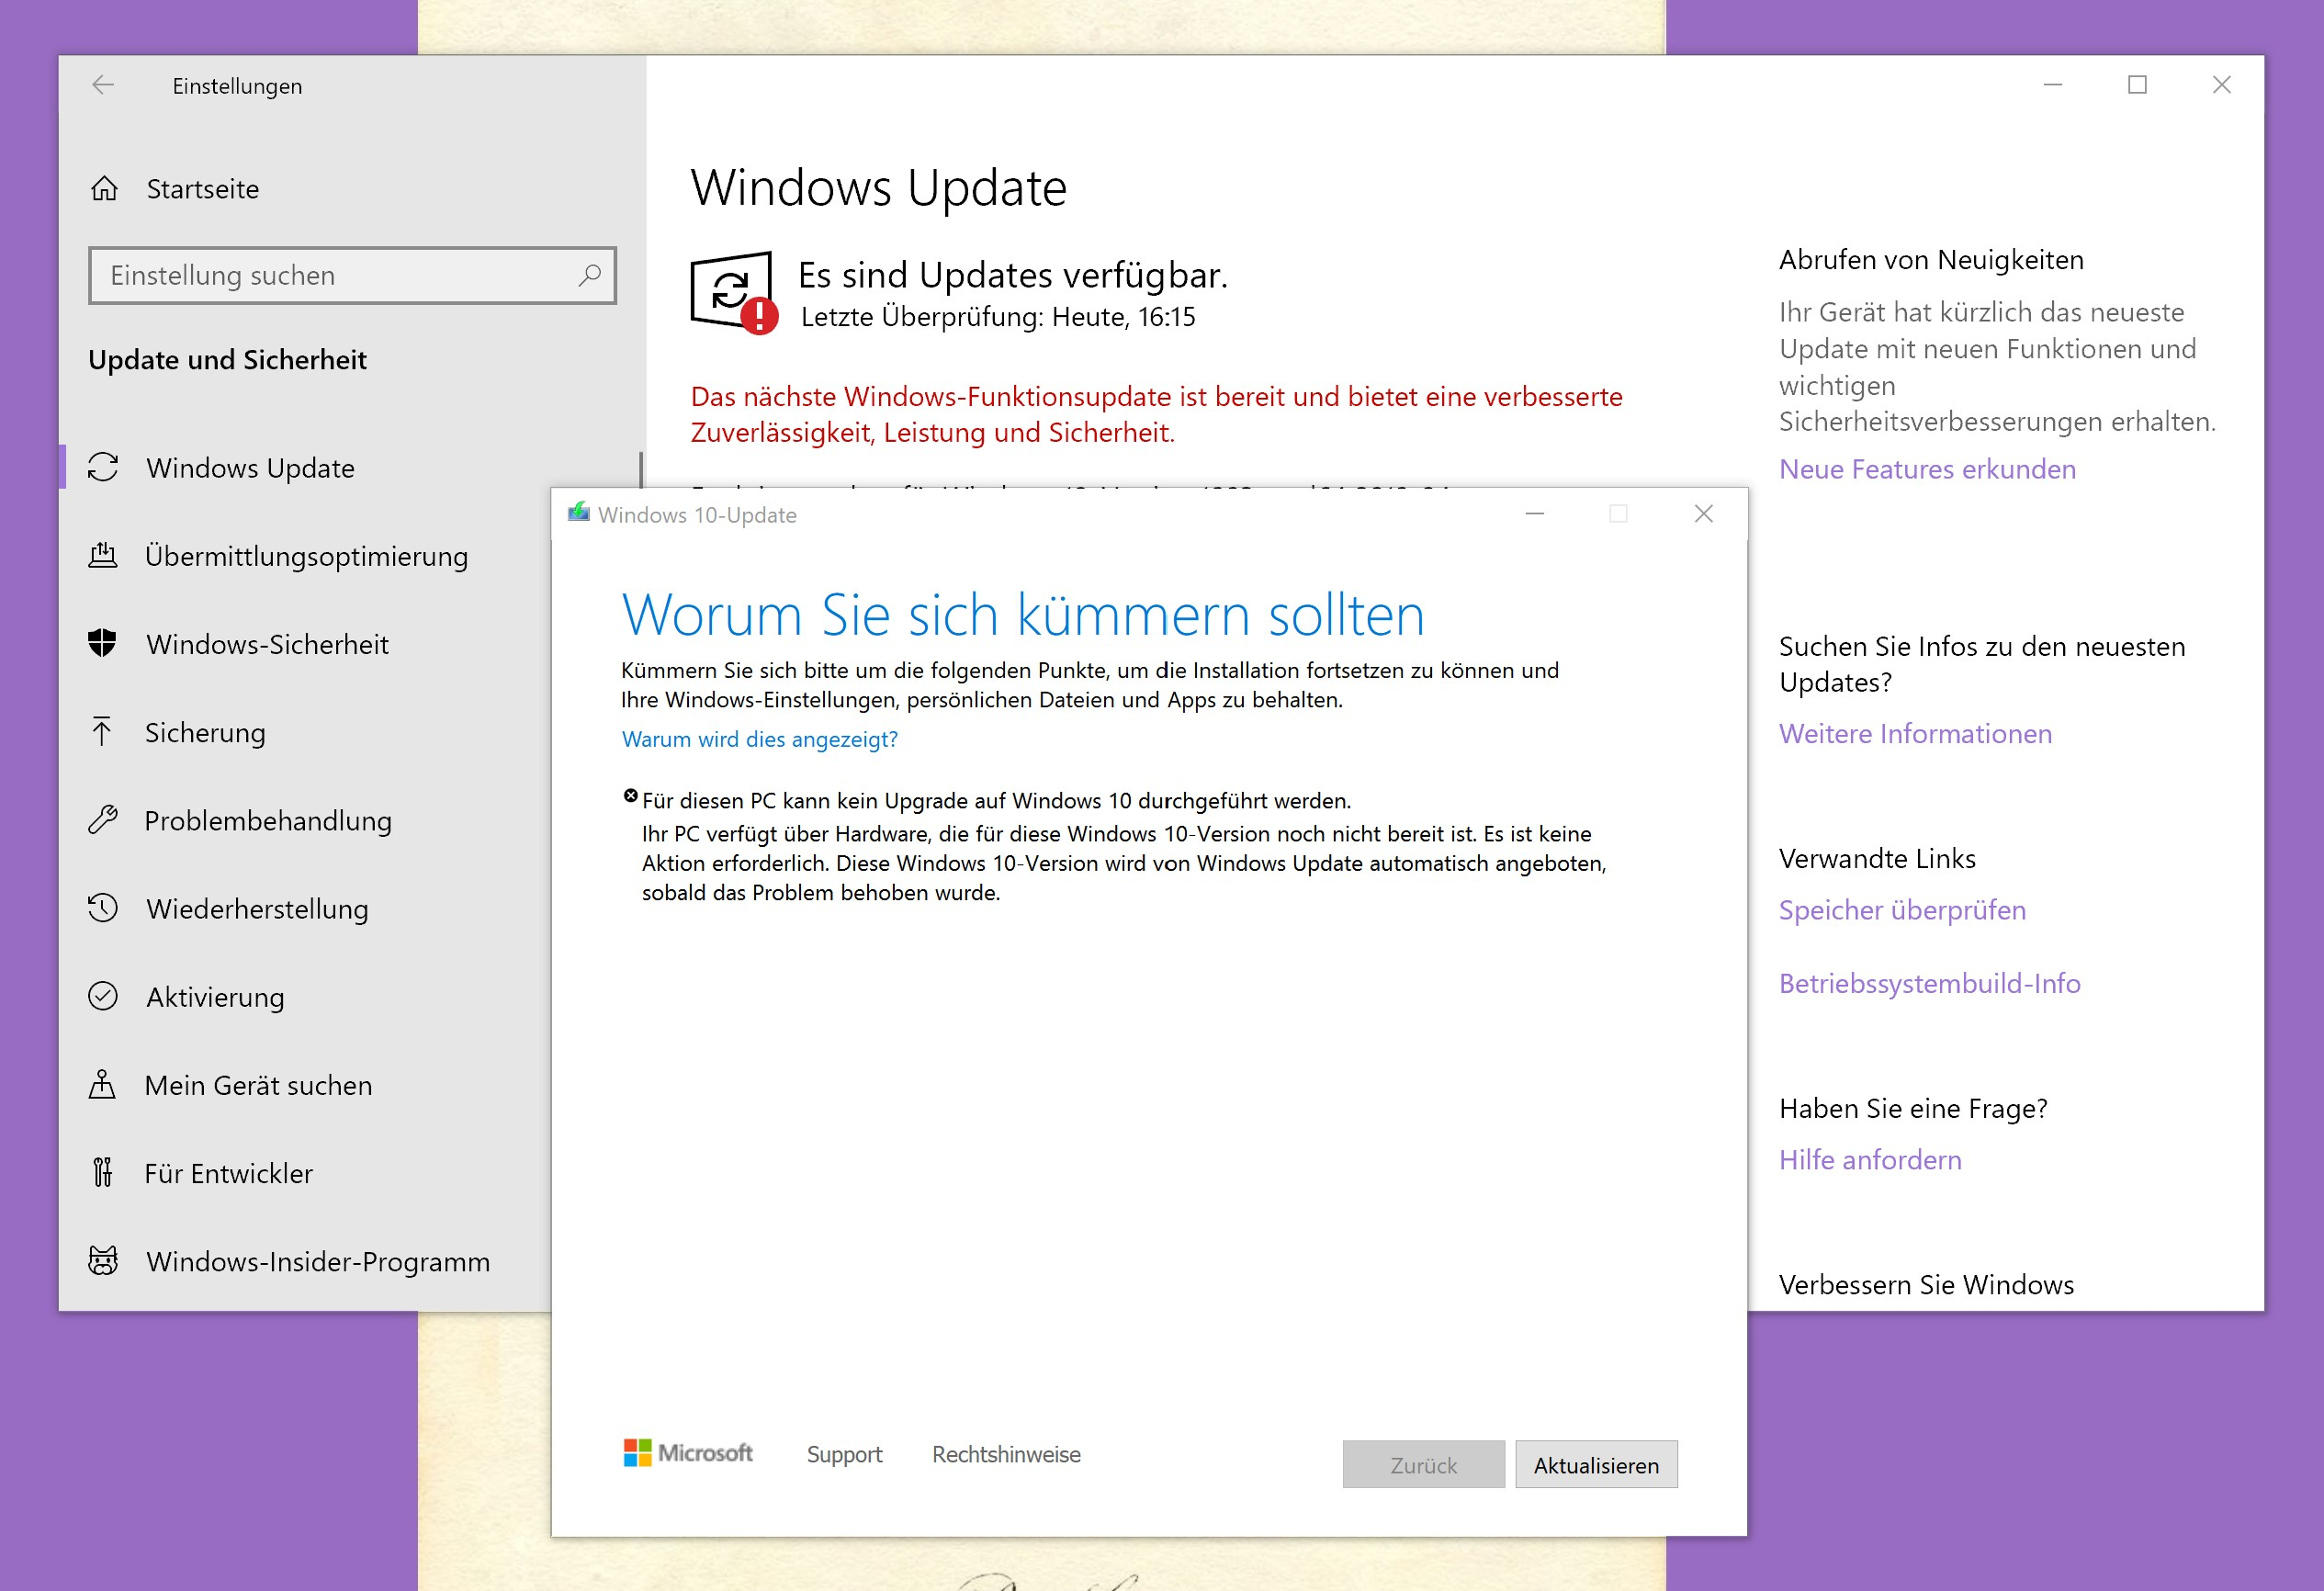 Surface Book 2, Insider Preview, update auf Windows 10 1903 bricht ab